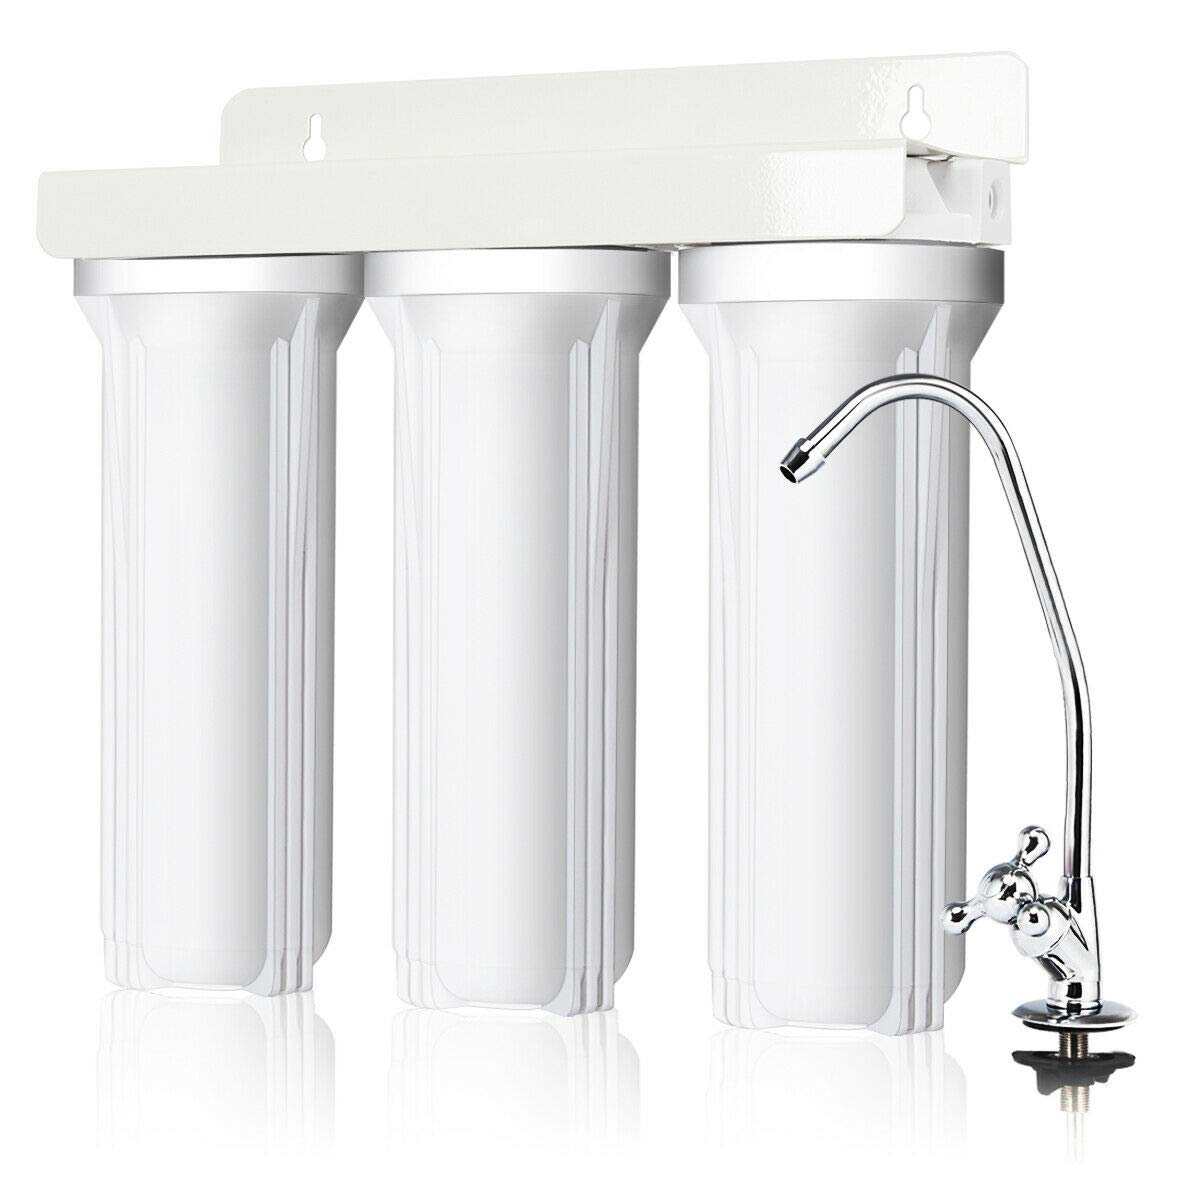 zwan 3-Stage Under-Sink Water Filter System Water Filtration with Chromed Faucet New with Ebook